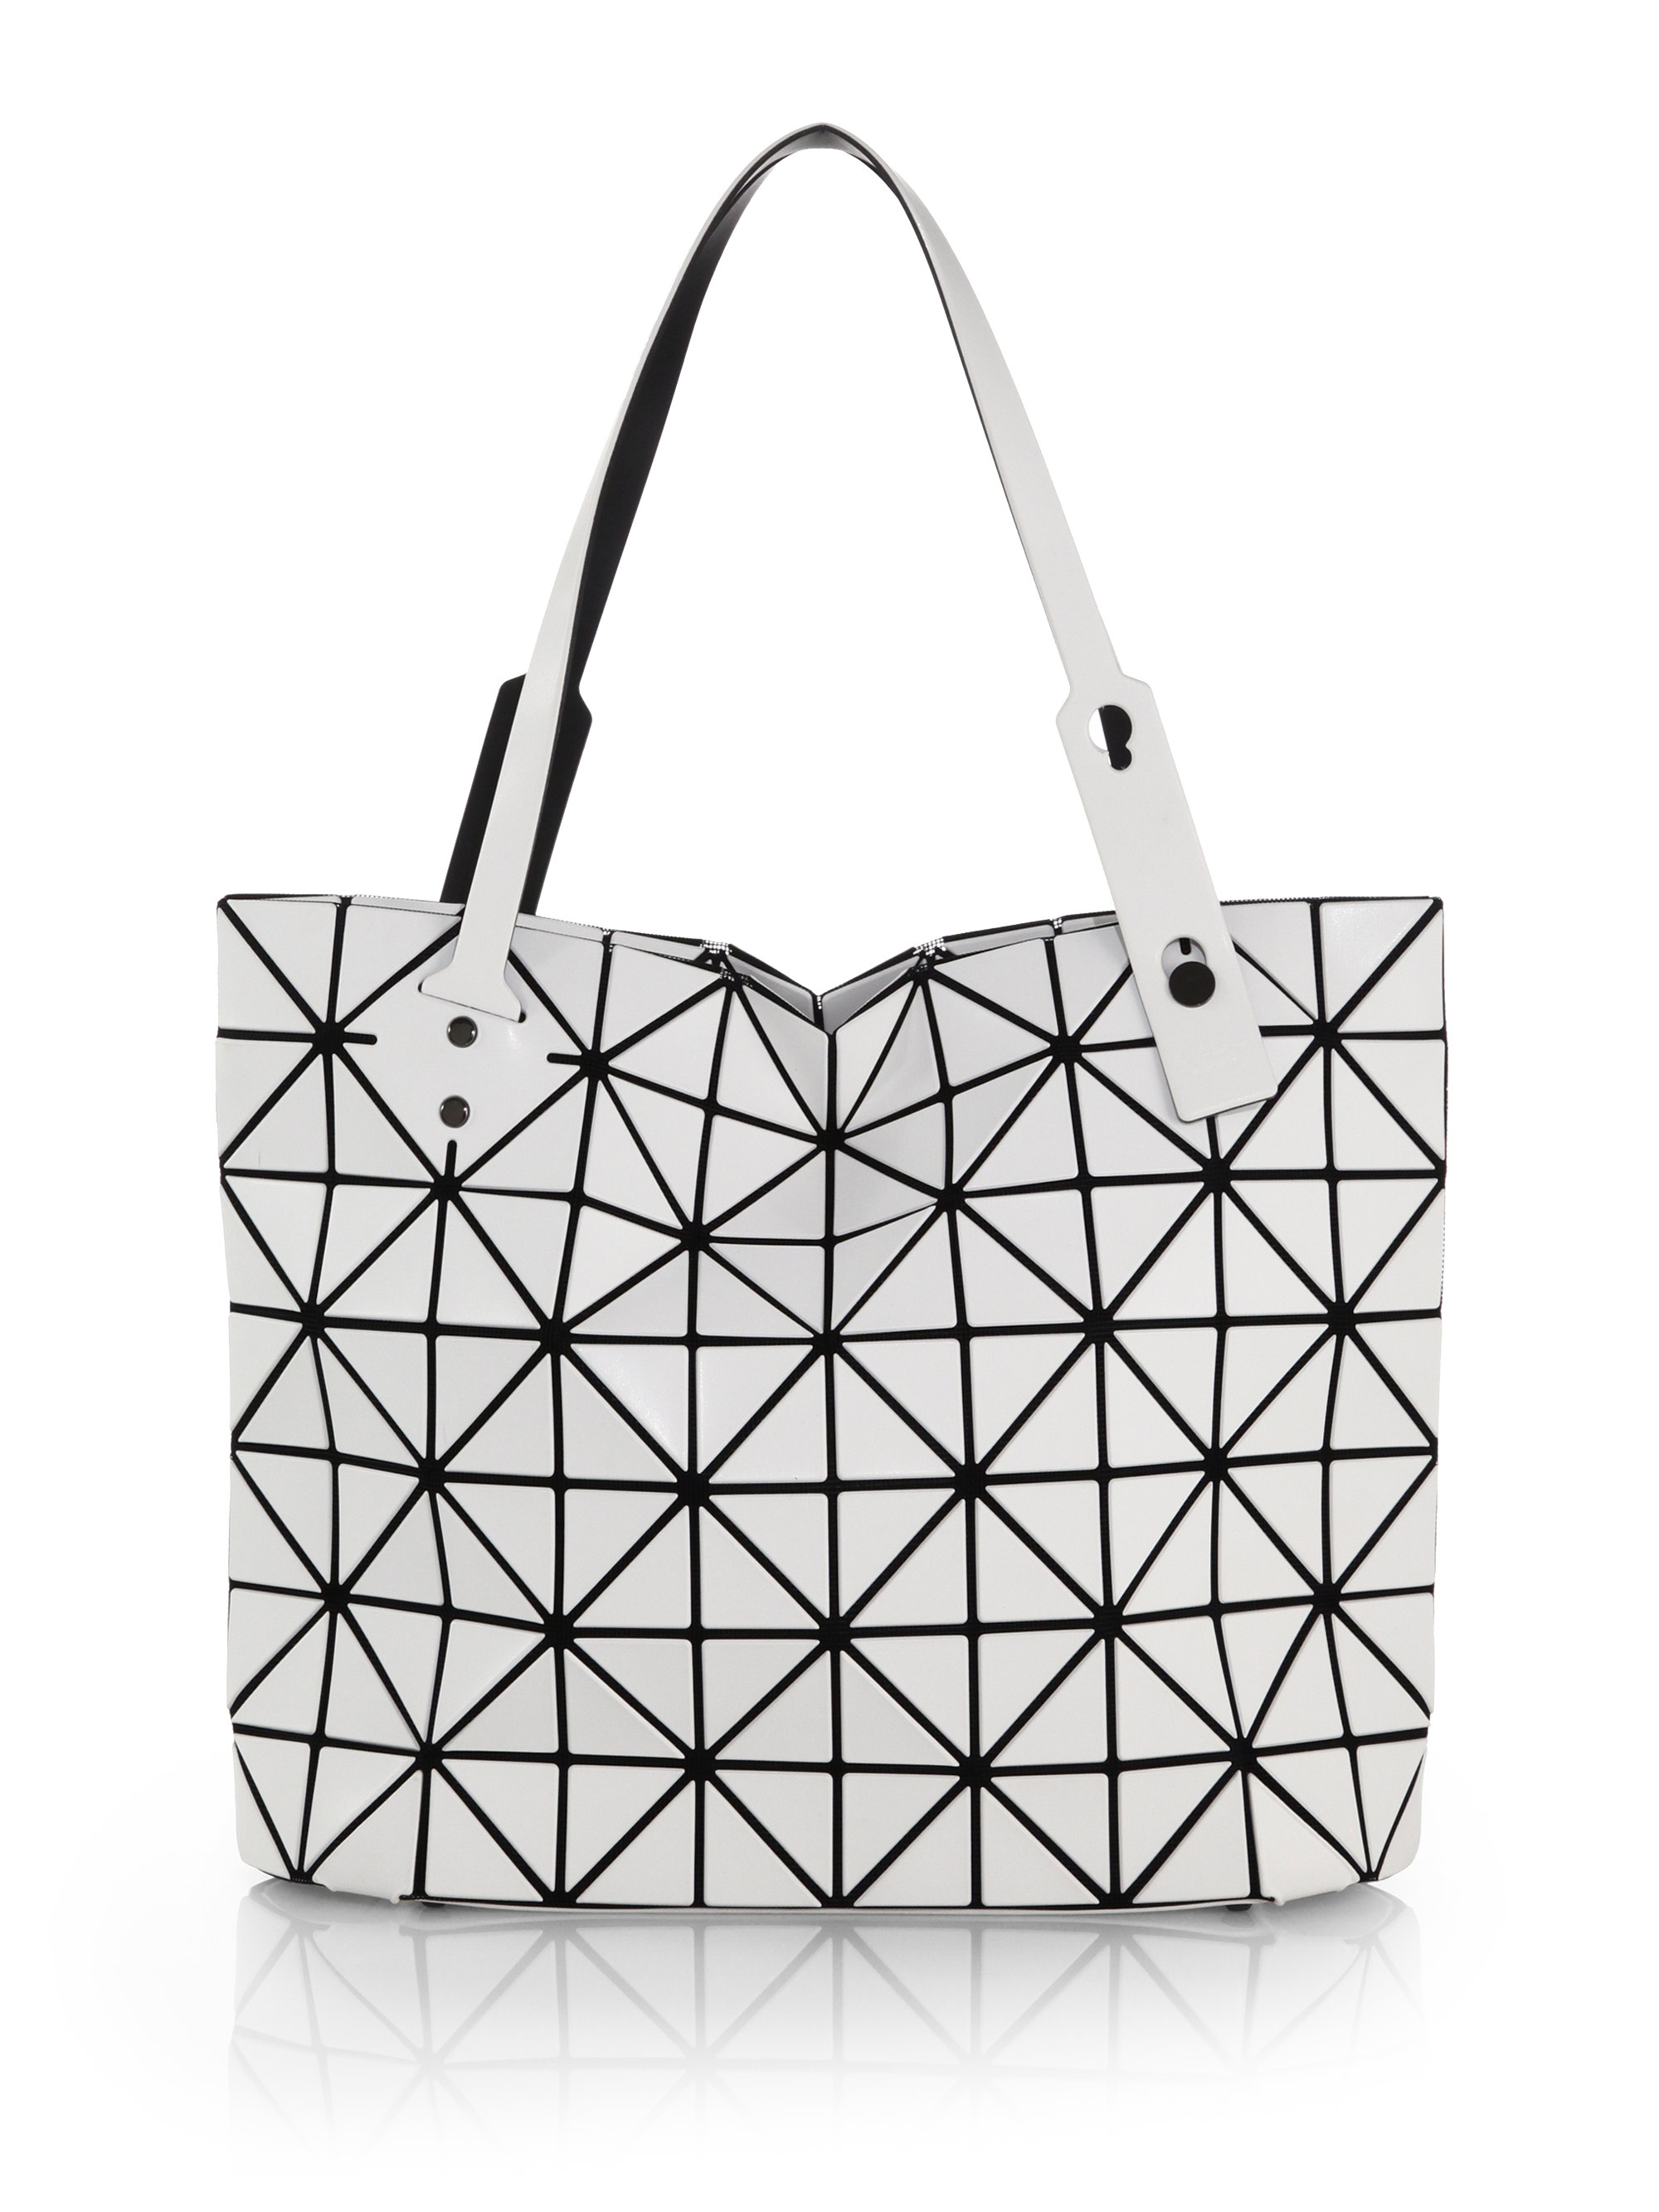 Lyst - Bao Bao Issey Miyake Rock East-west Matte Faux Leather Zip ... e85aed56b4968